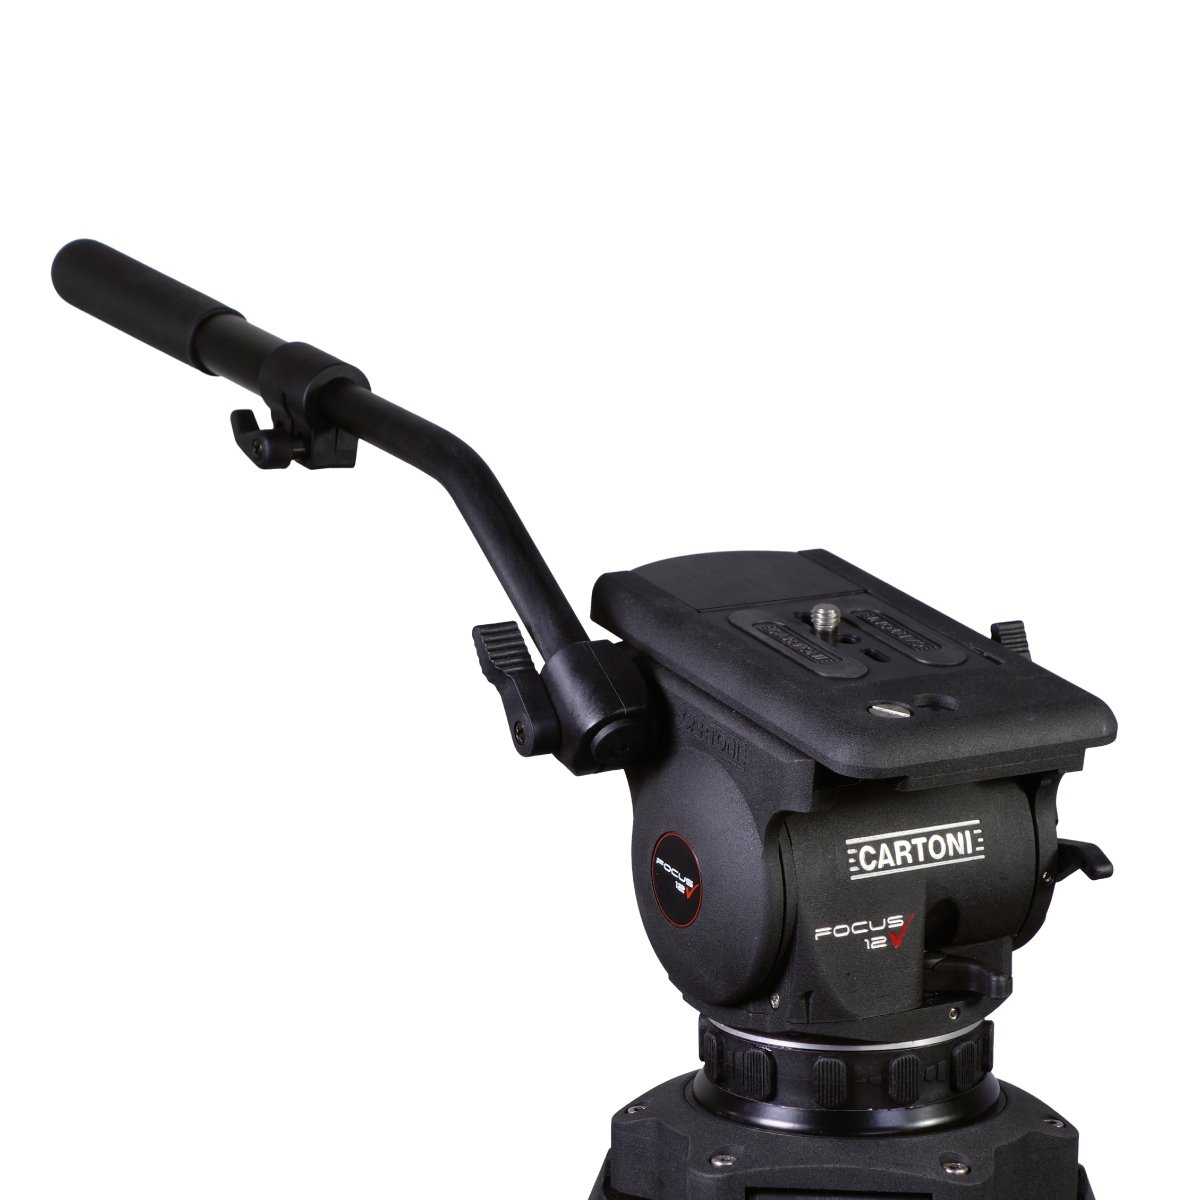 Focus 12 2-Stage Smart Stop Tripod wtih Mid Level Spreader